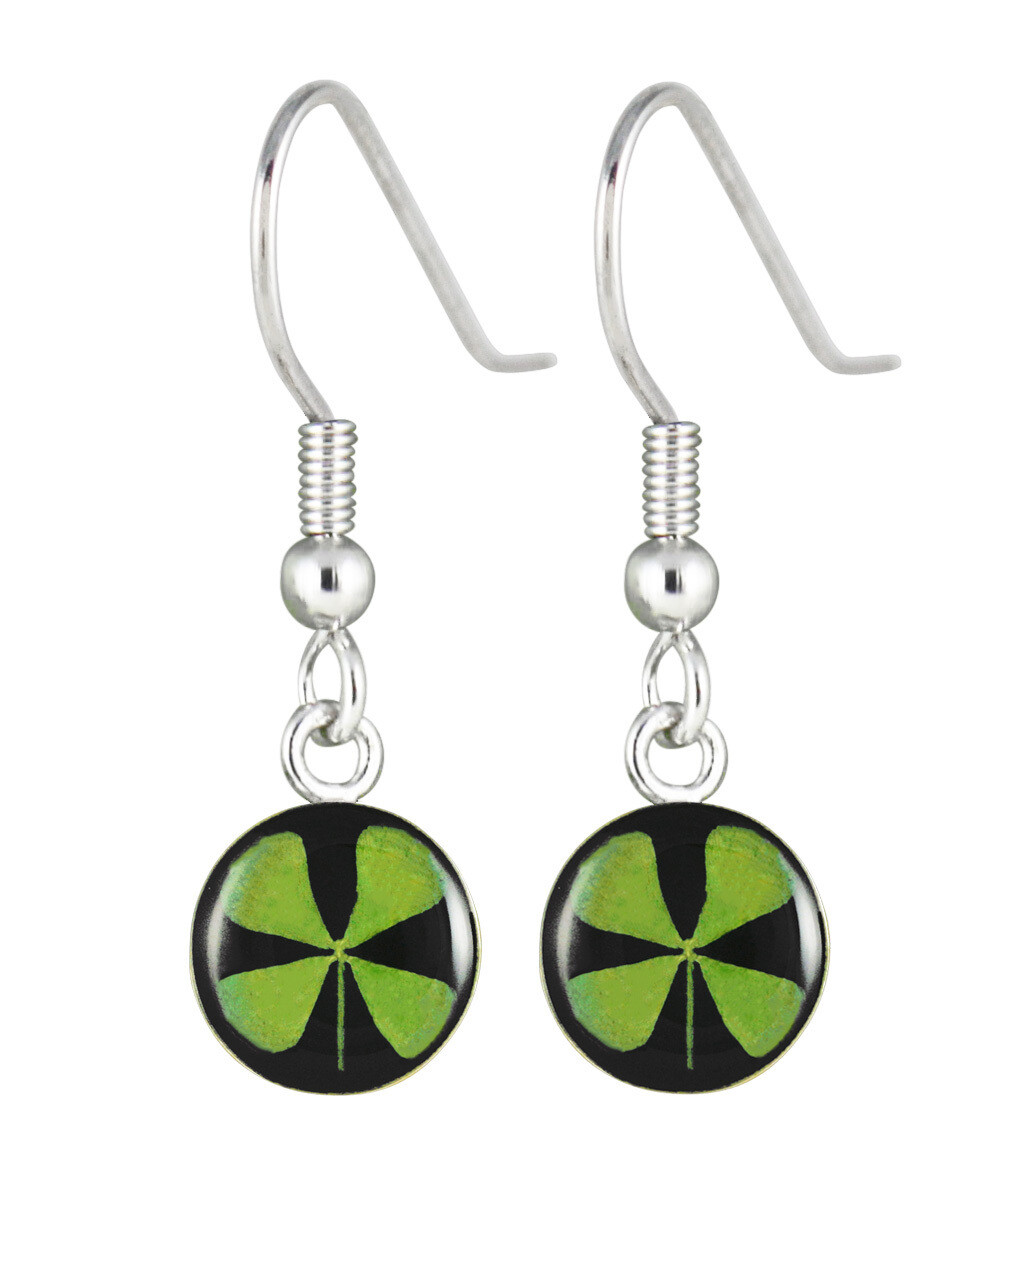 Four-Leaf Clover, Circle Hanging Earrings, Black Background